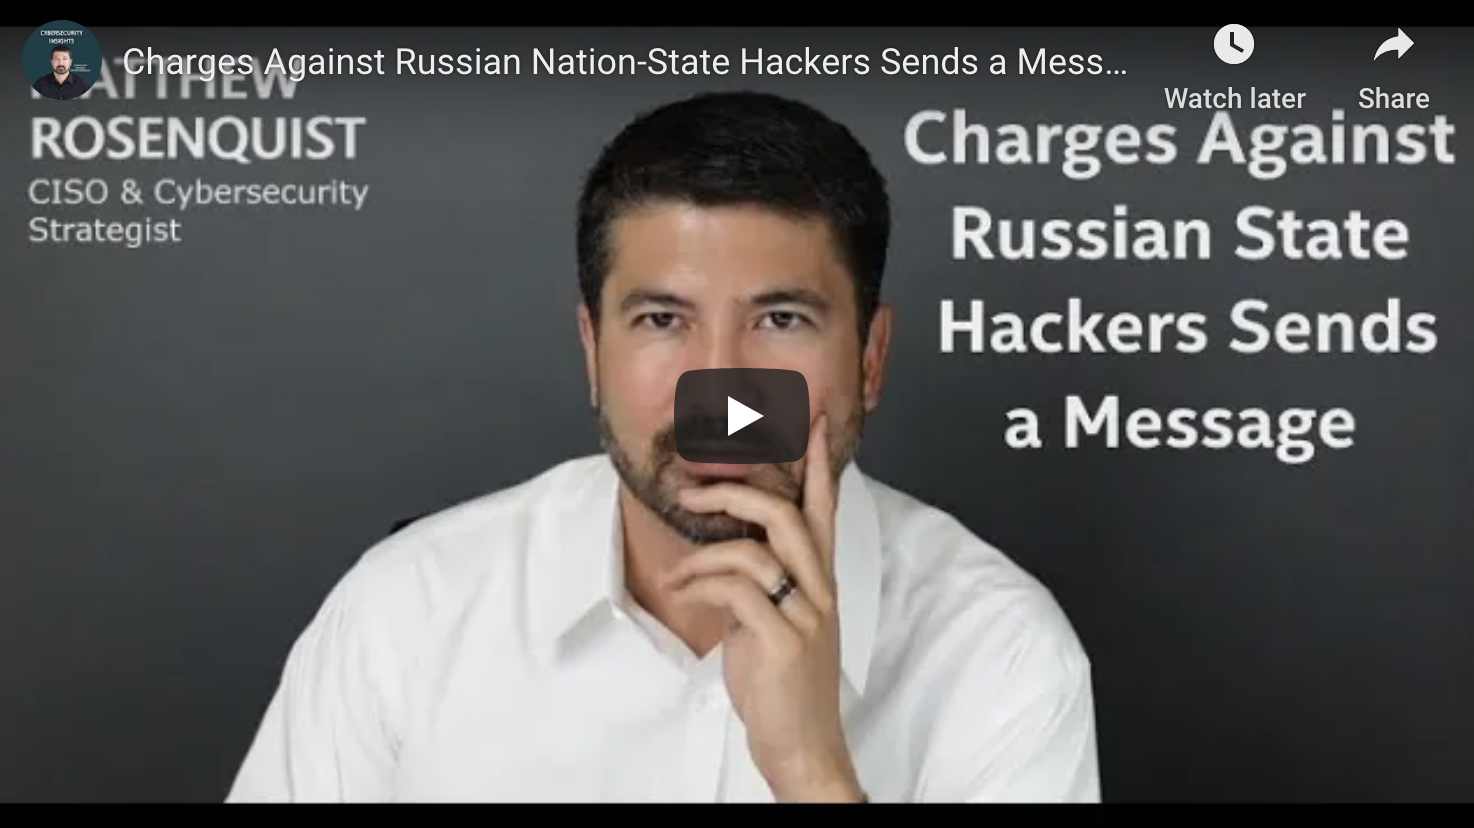 Charges_Against_Russian_Nation-State_Hackers_Sends_a_Message.png